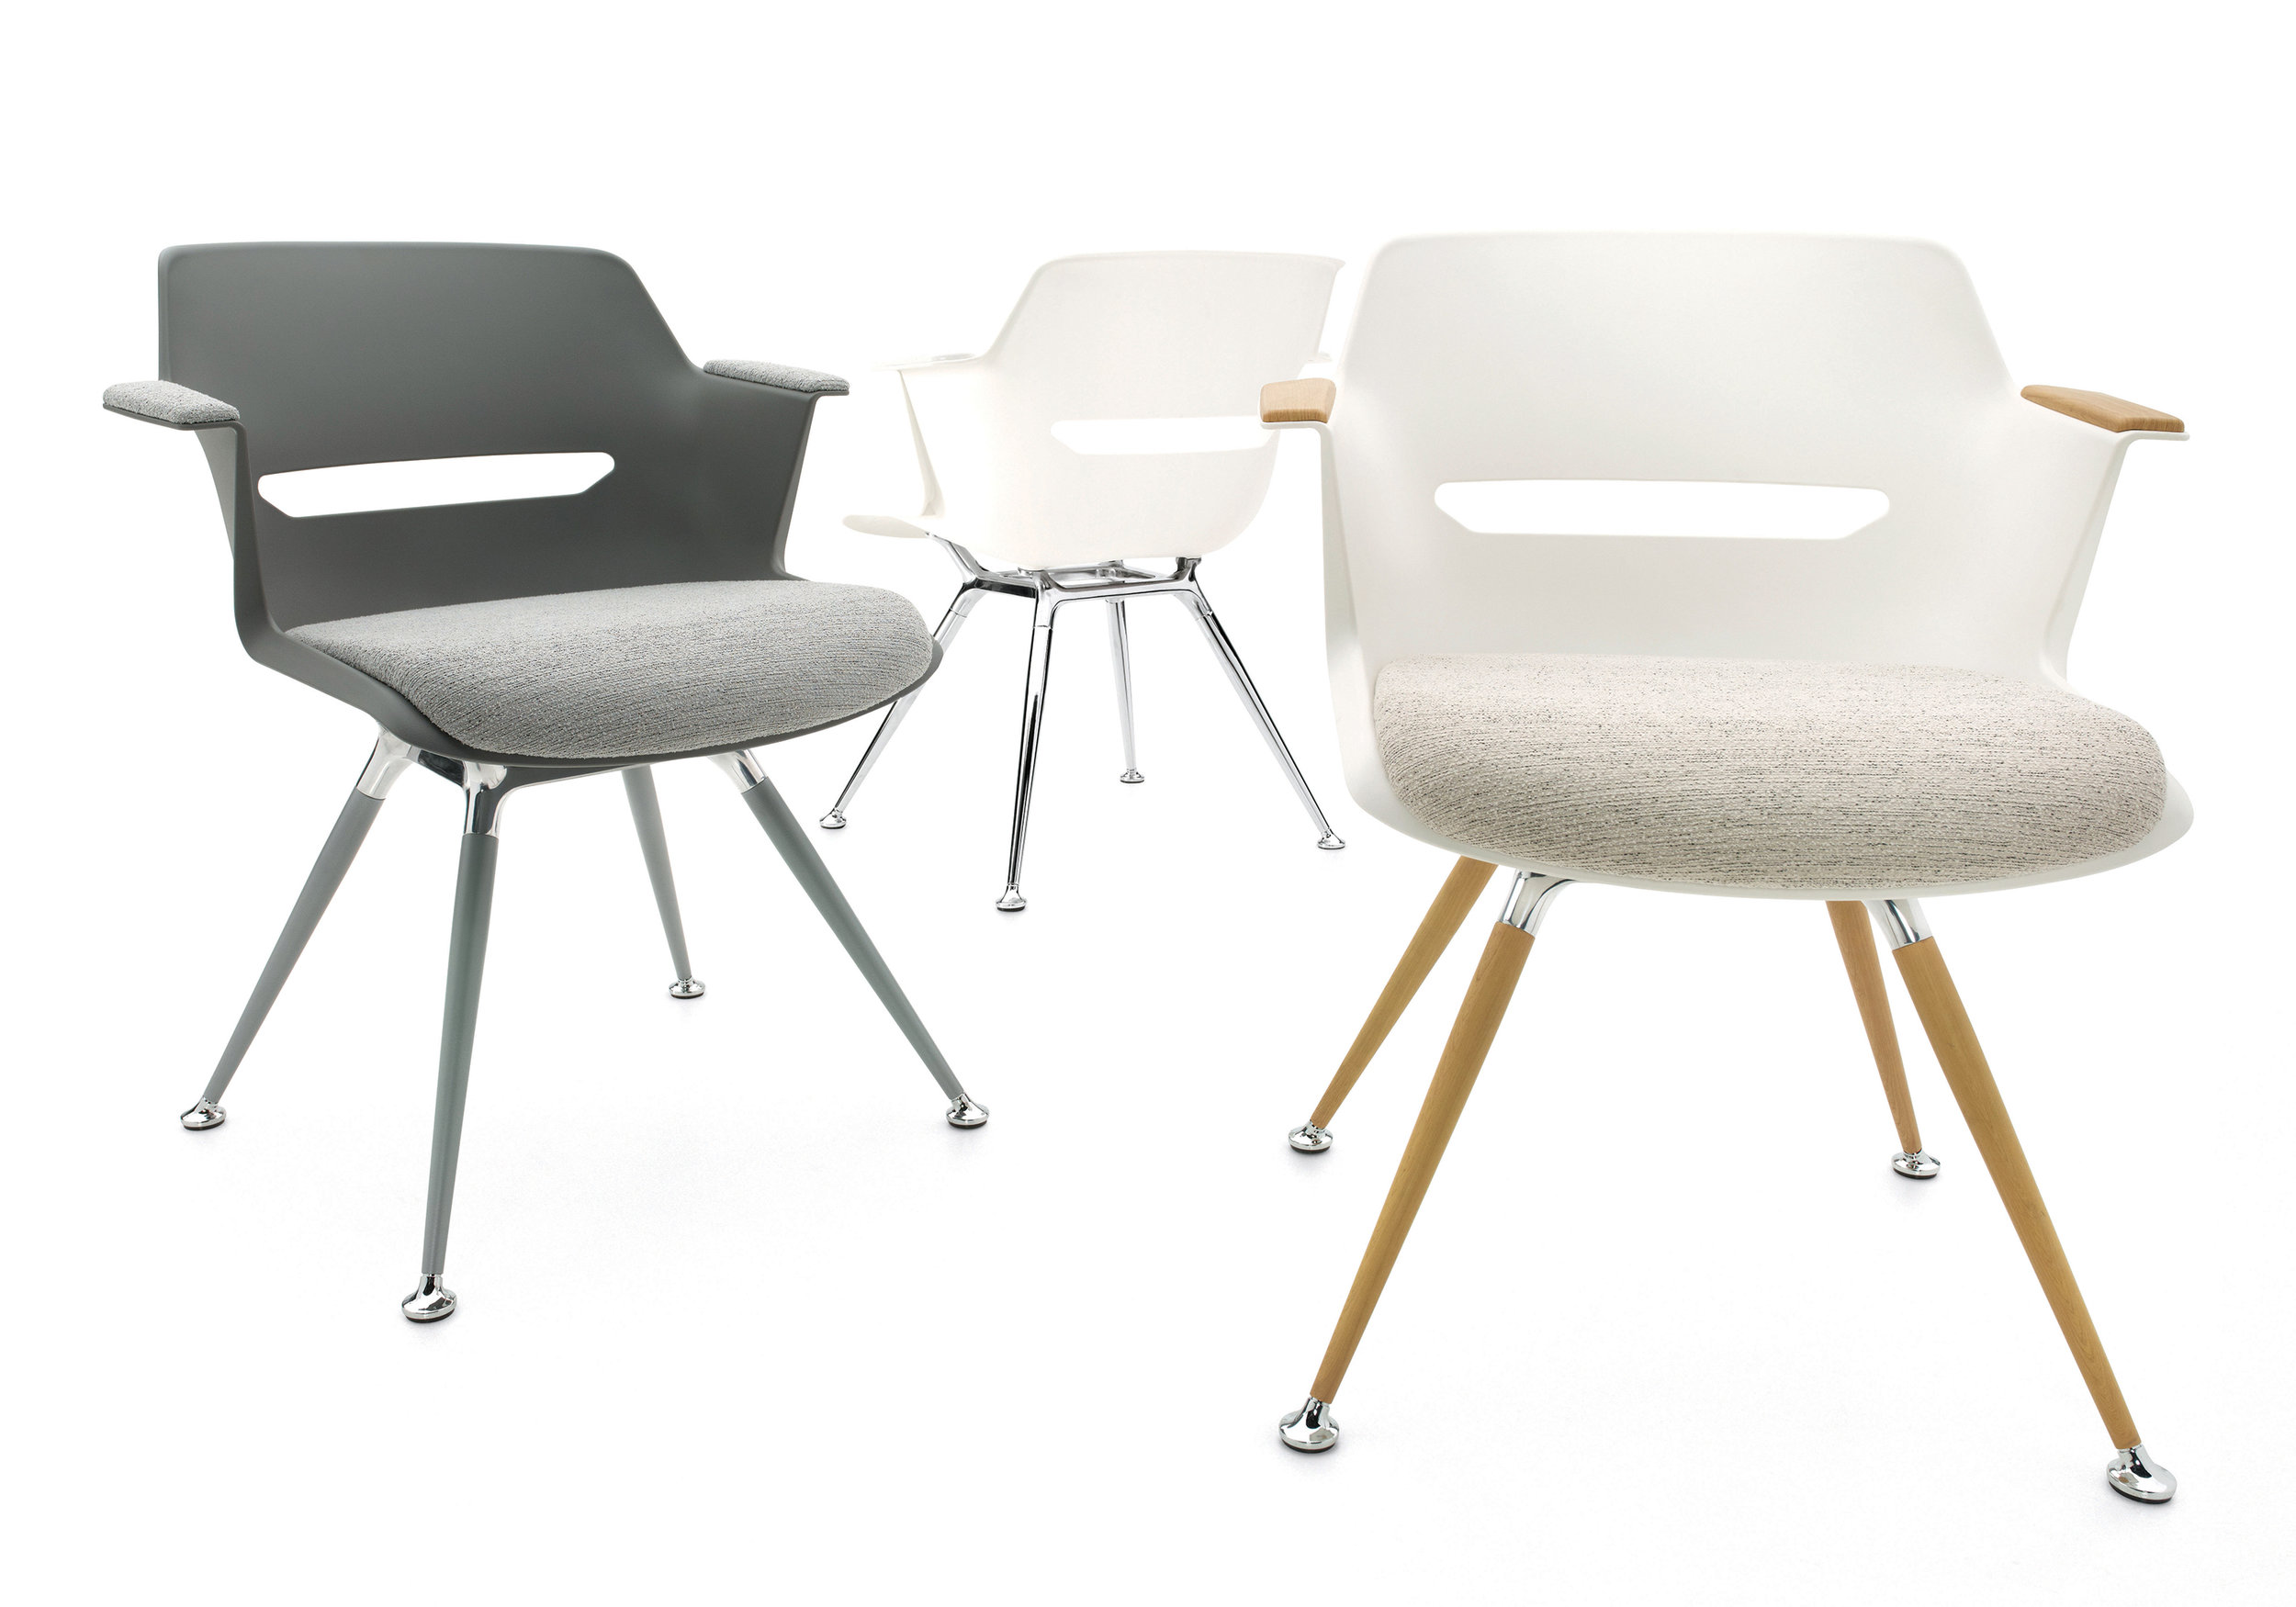 Moda chairs from Global Furniture Group is a fashion-forward seating series designed by Sava Cvek that is perfect for a smaller home office. The polished aluminum frame can be customized with a mix of leg finishes to match your décor.